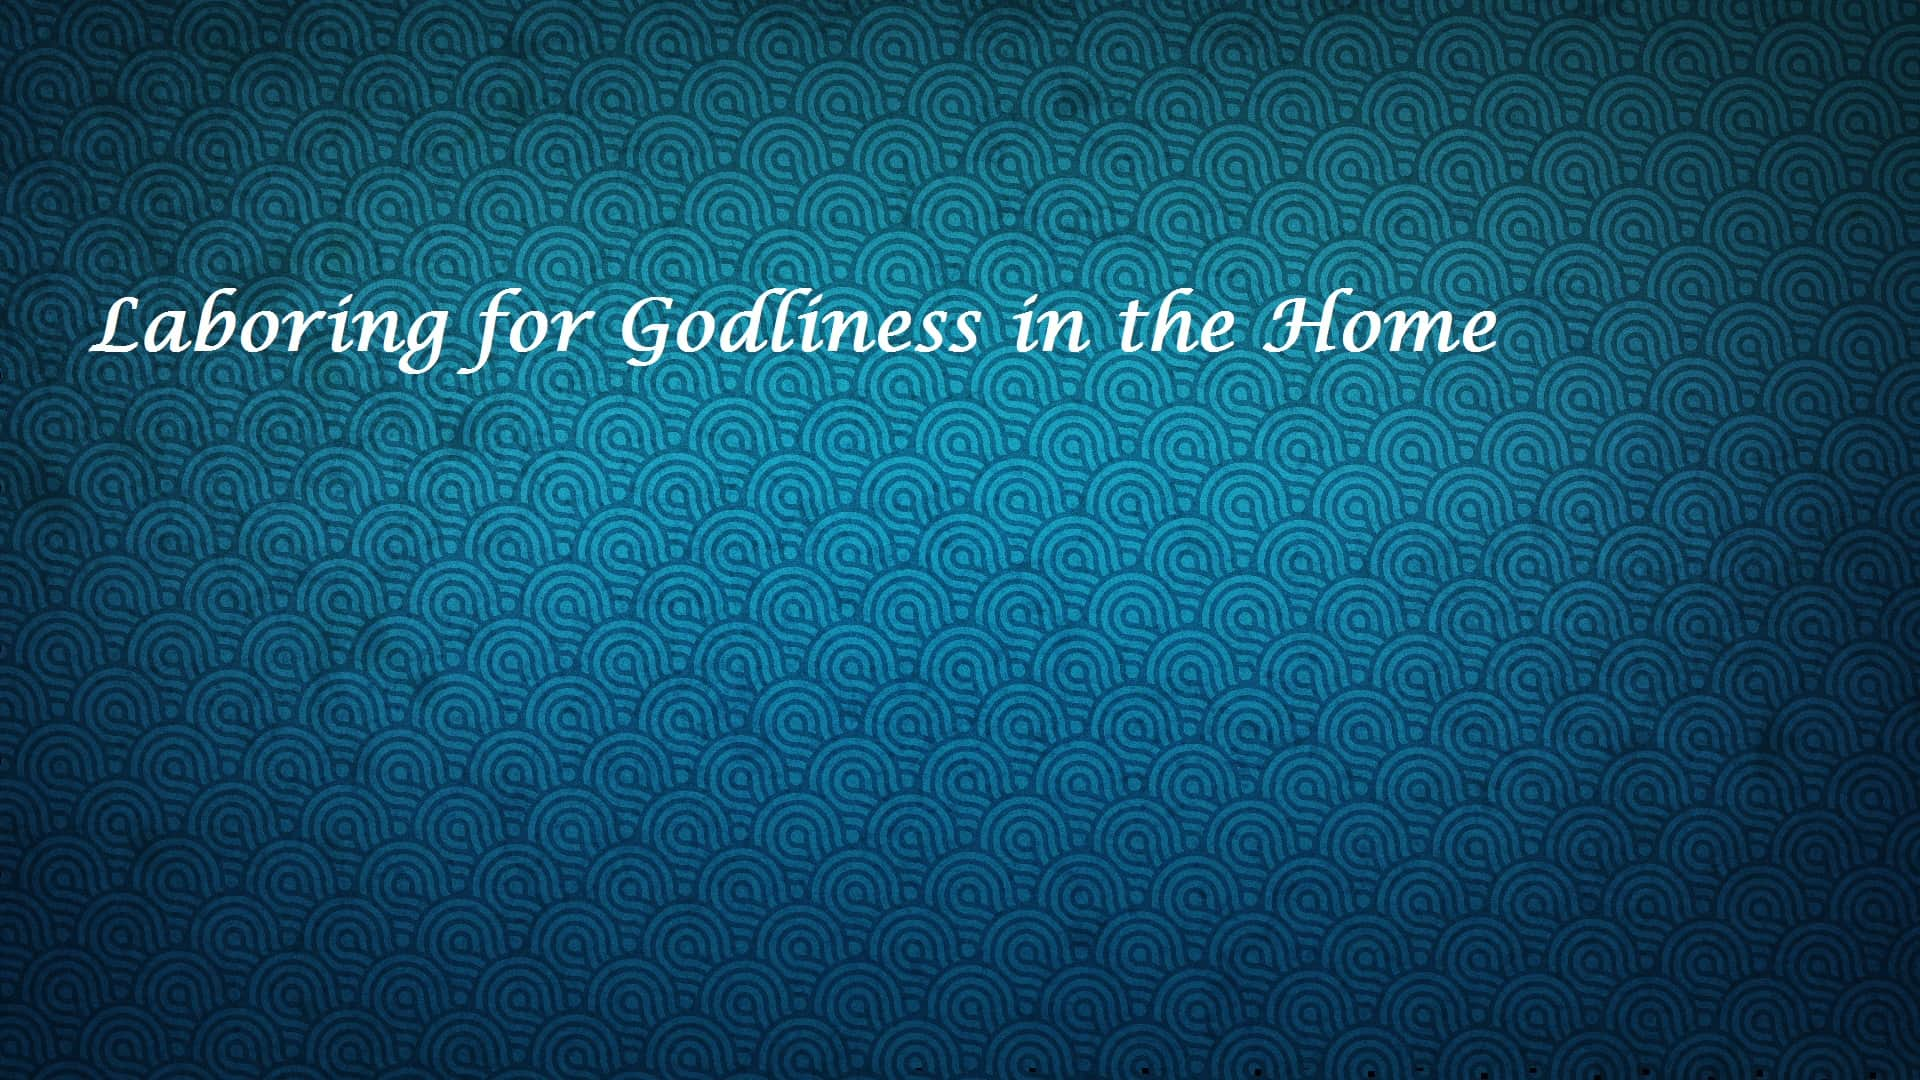 Laboring, Laboring for Godliness in the Home, Servants of Grace, Servants of Grace